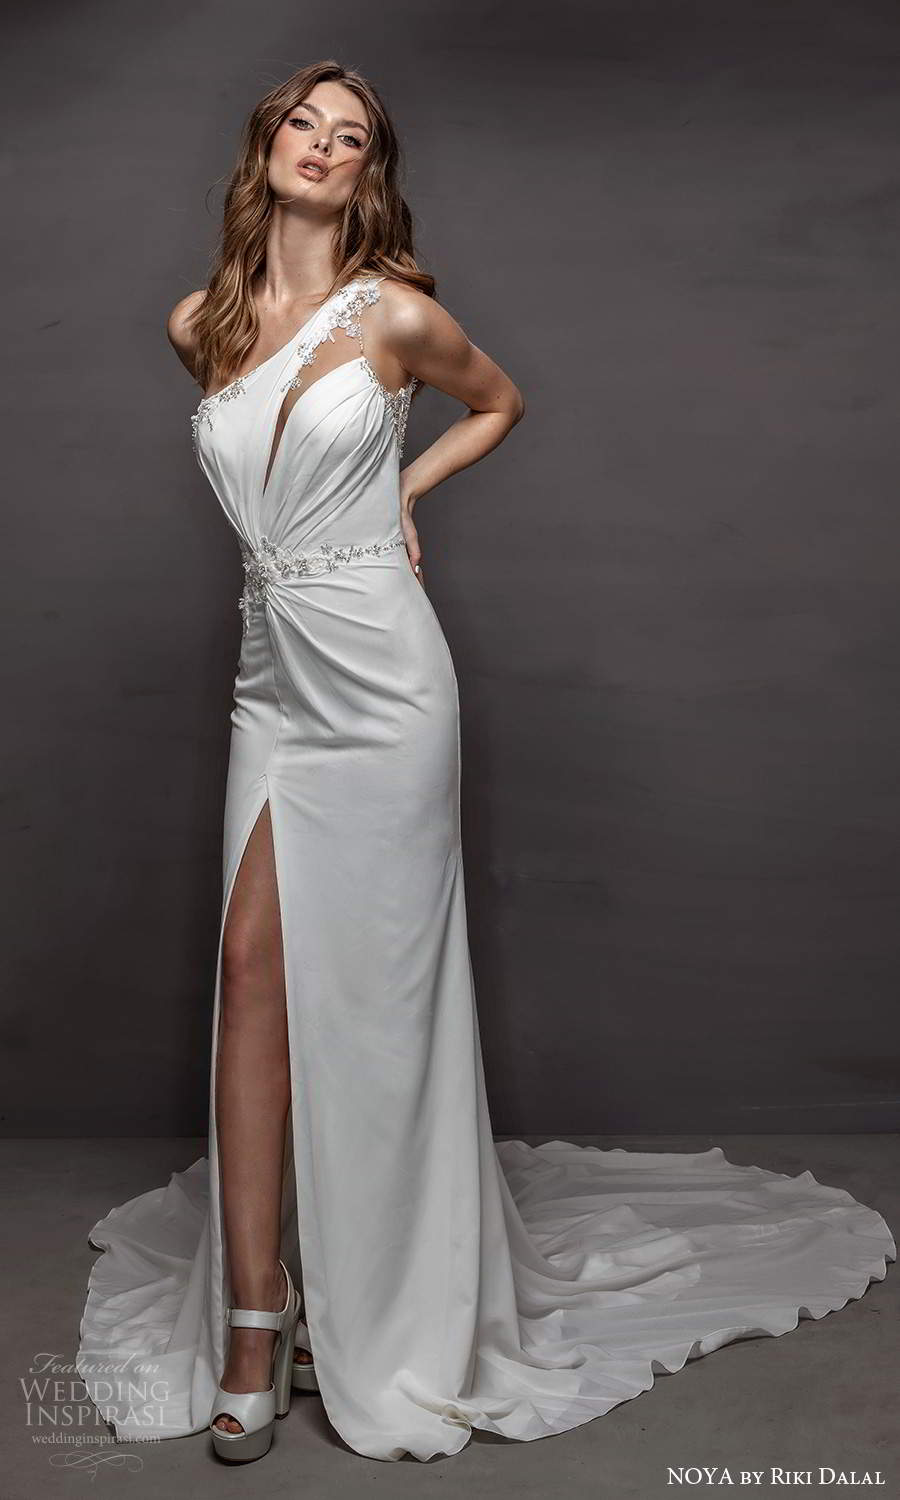 noya riki dalal 2021 bridal sleeveless one shoulder strap asymmetric neckline clean minimalist sheath wedding dress slit skirt chapel train (12) mv